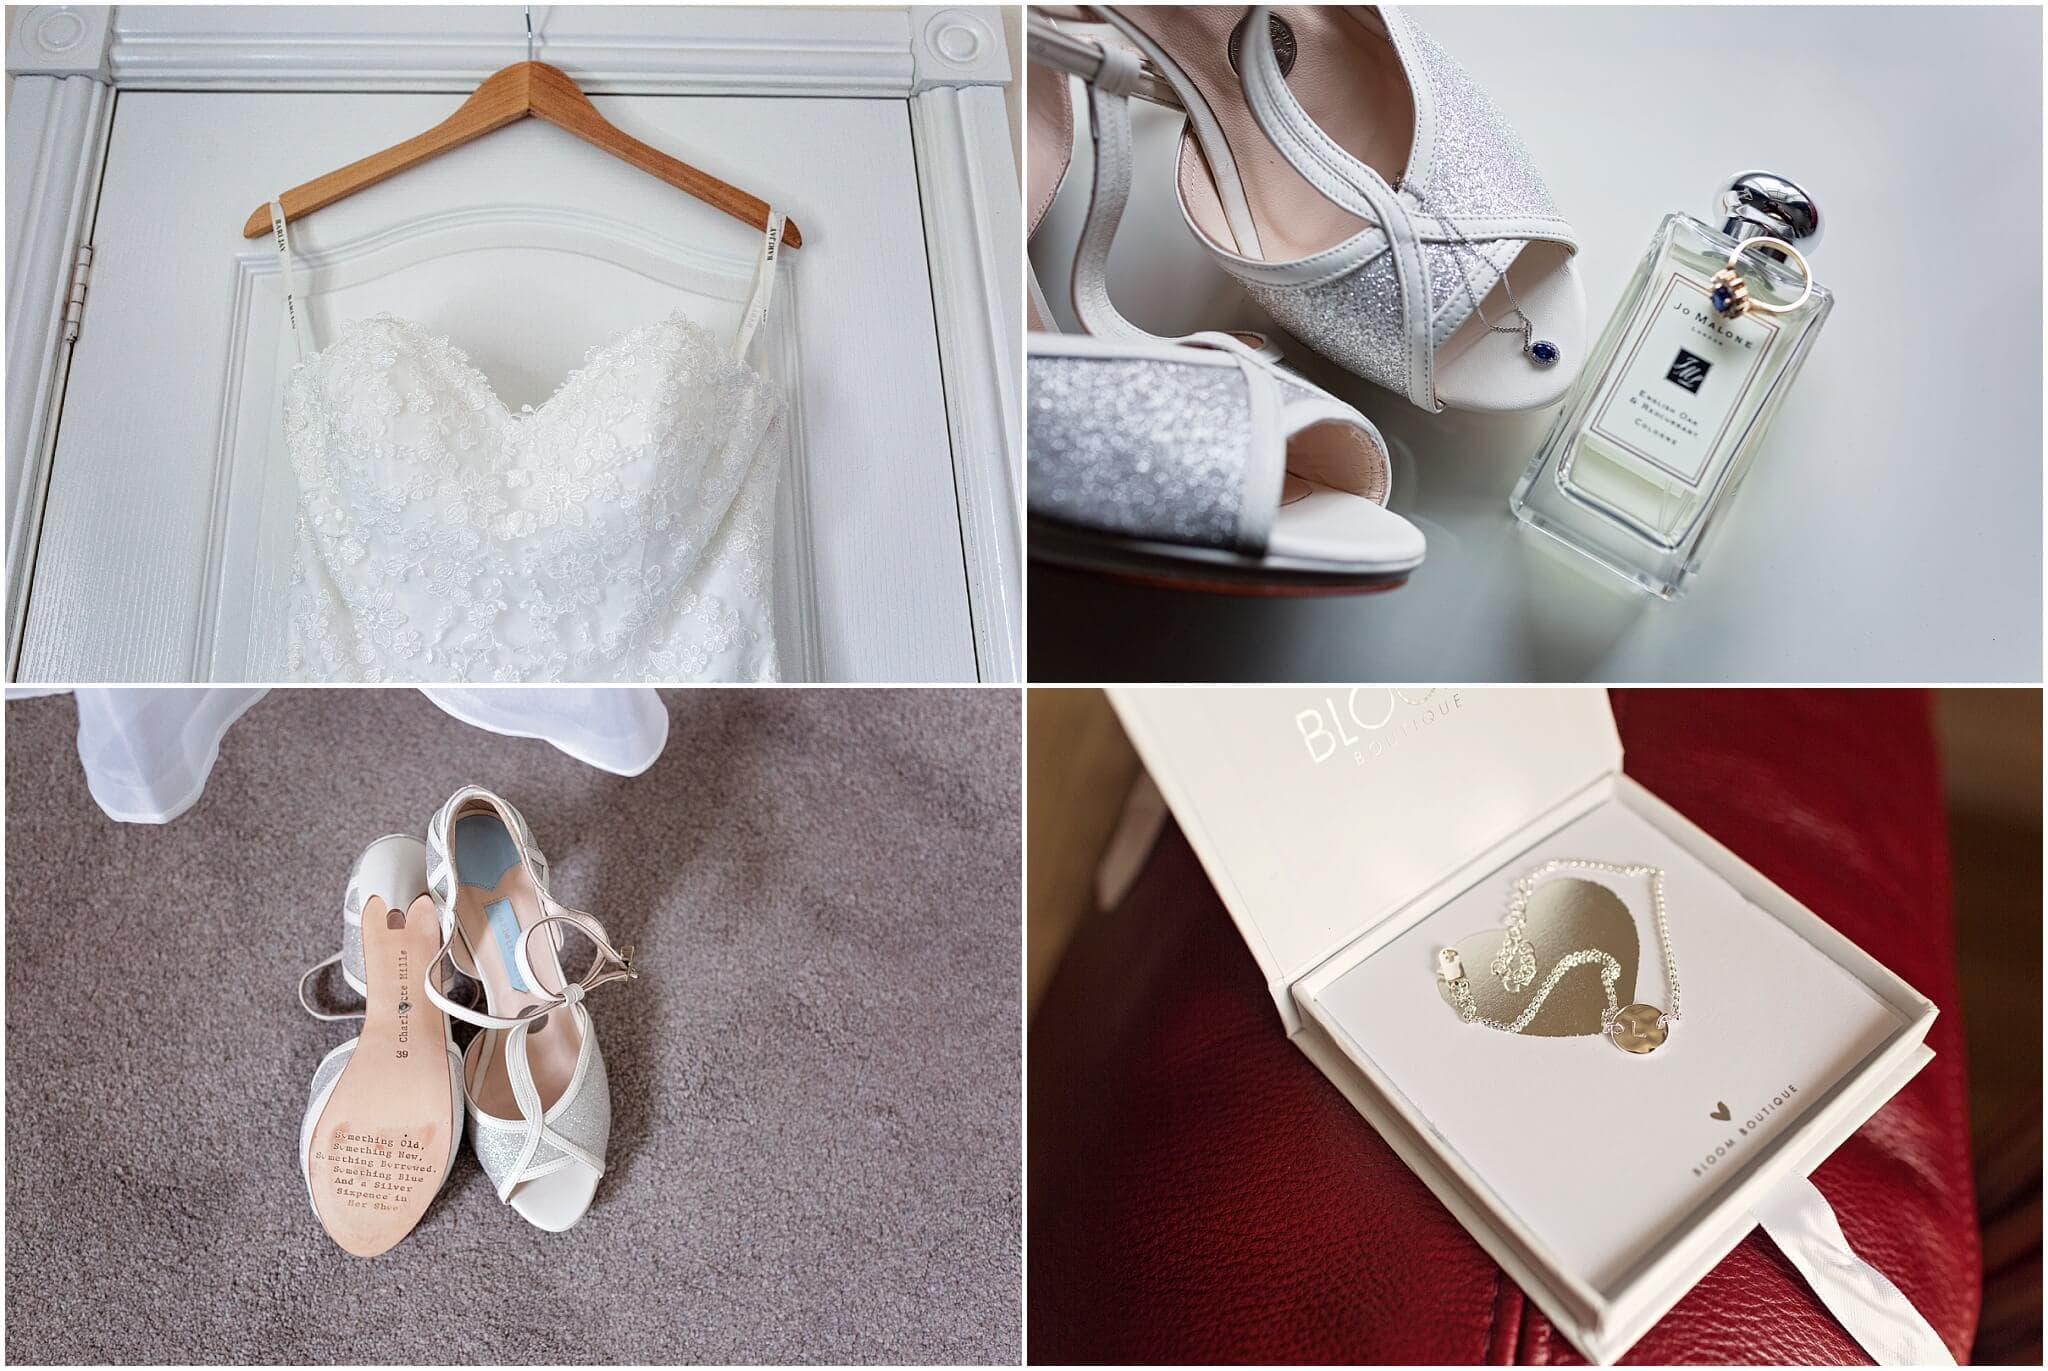 Bridal shoes and wedding dress, Jo Malone scent